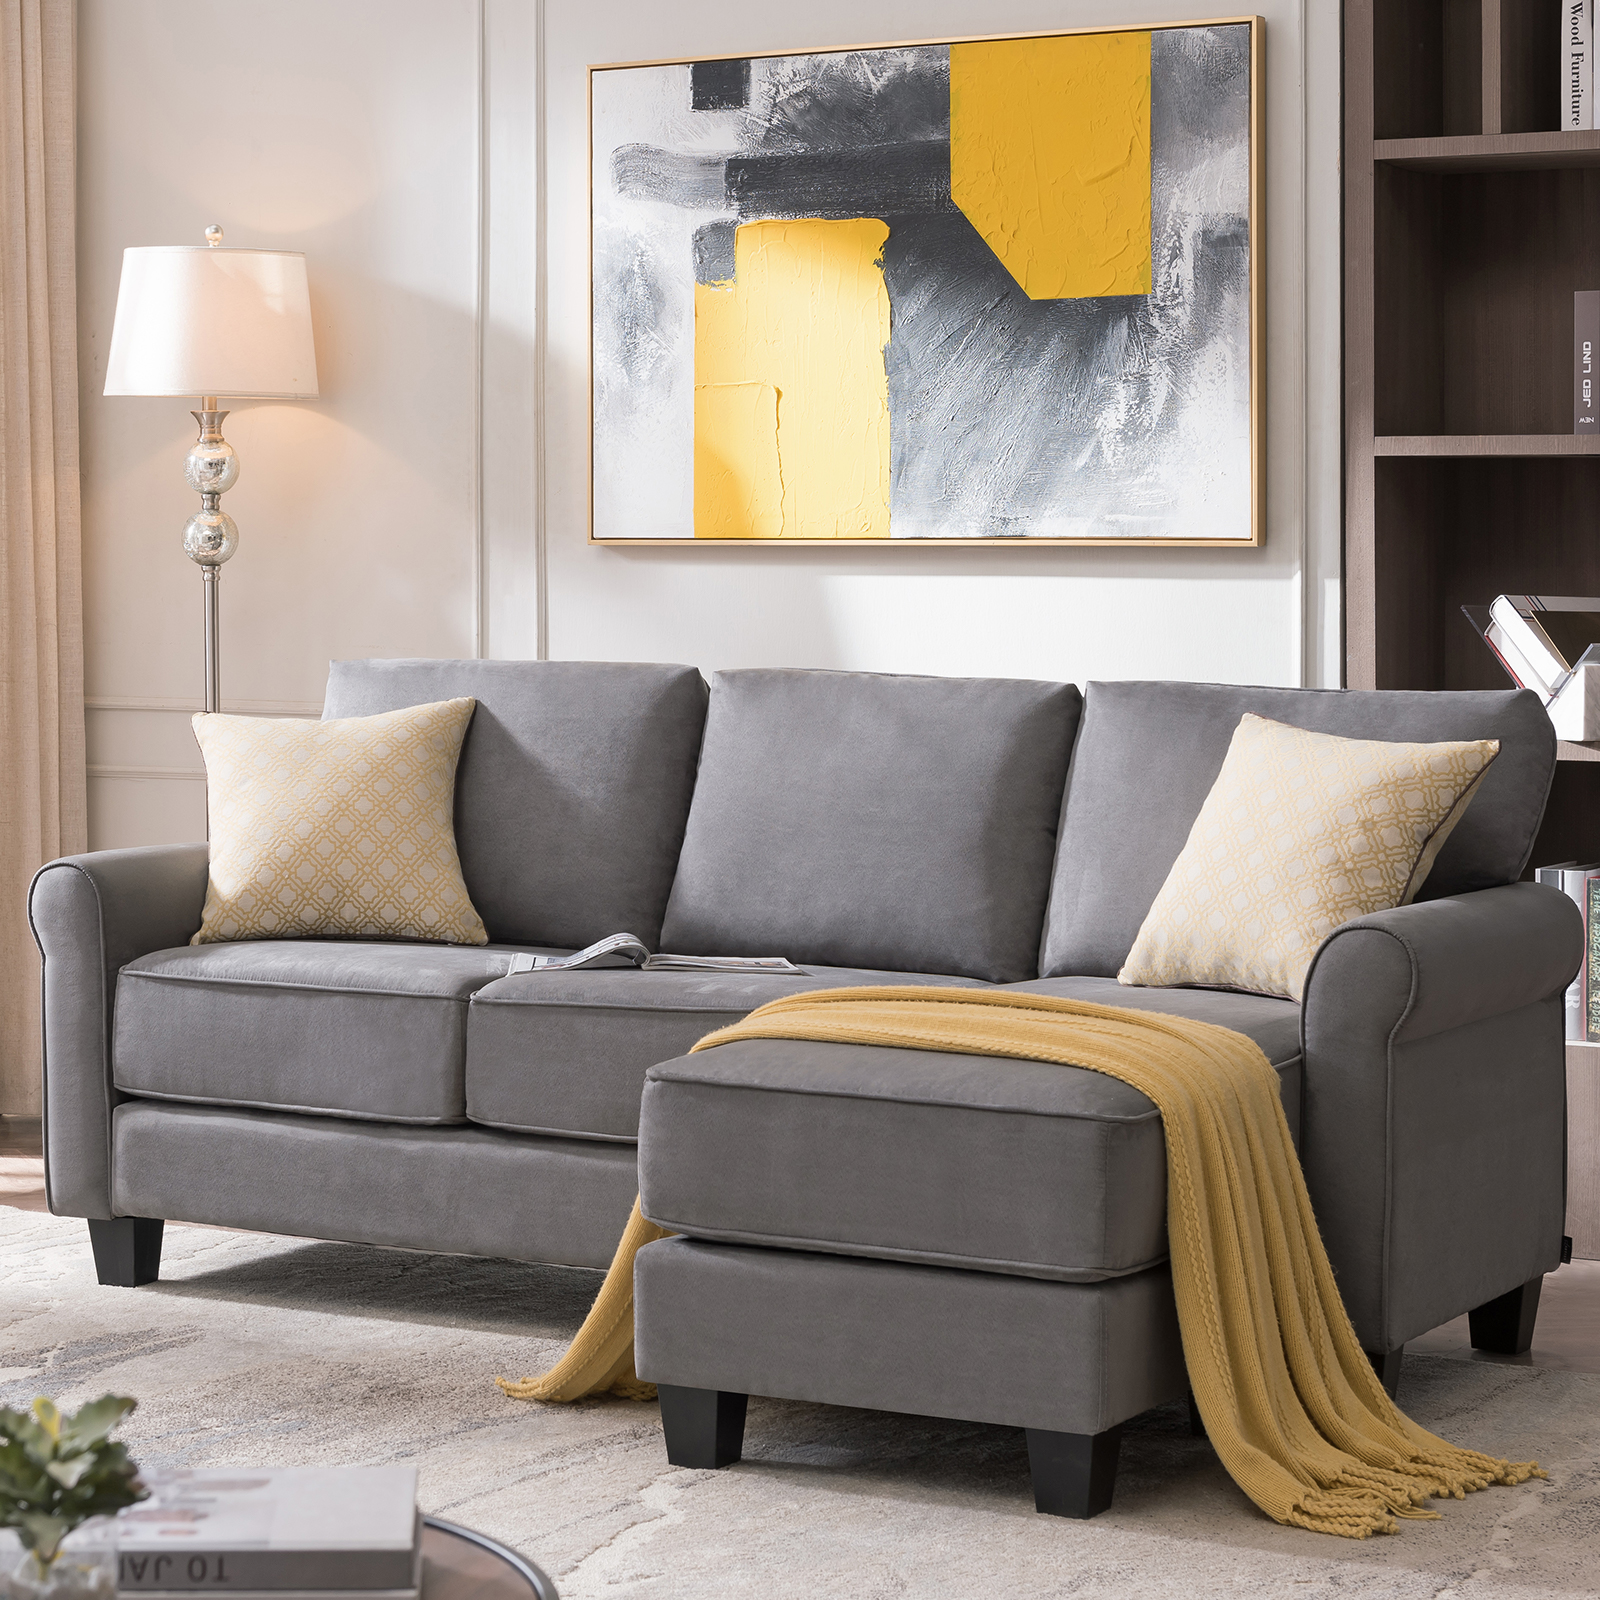 Picture of: Sectional Sofa Convertible Couch L Shape Sofa Couch 3 Seat Dusty Grey Ebay